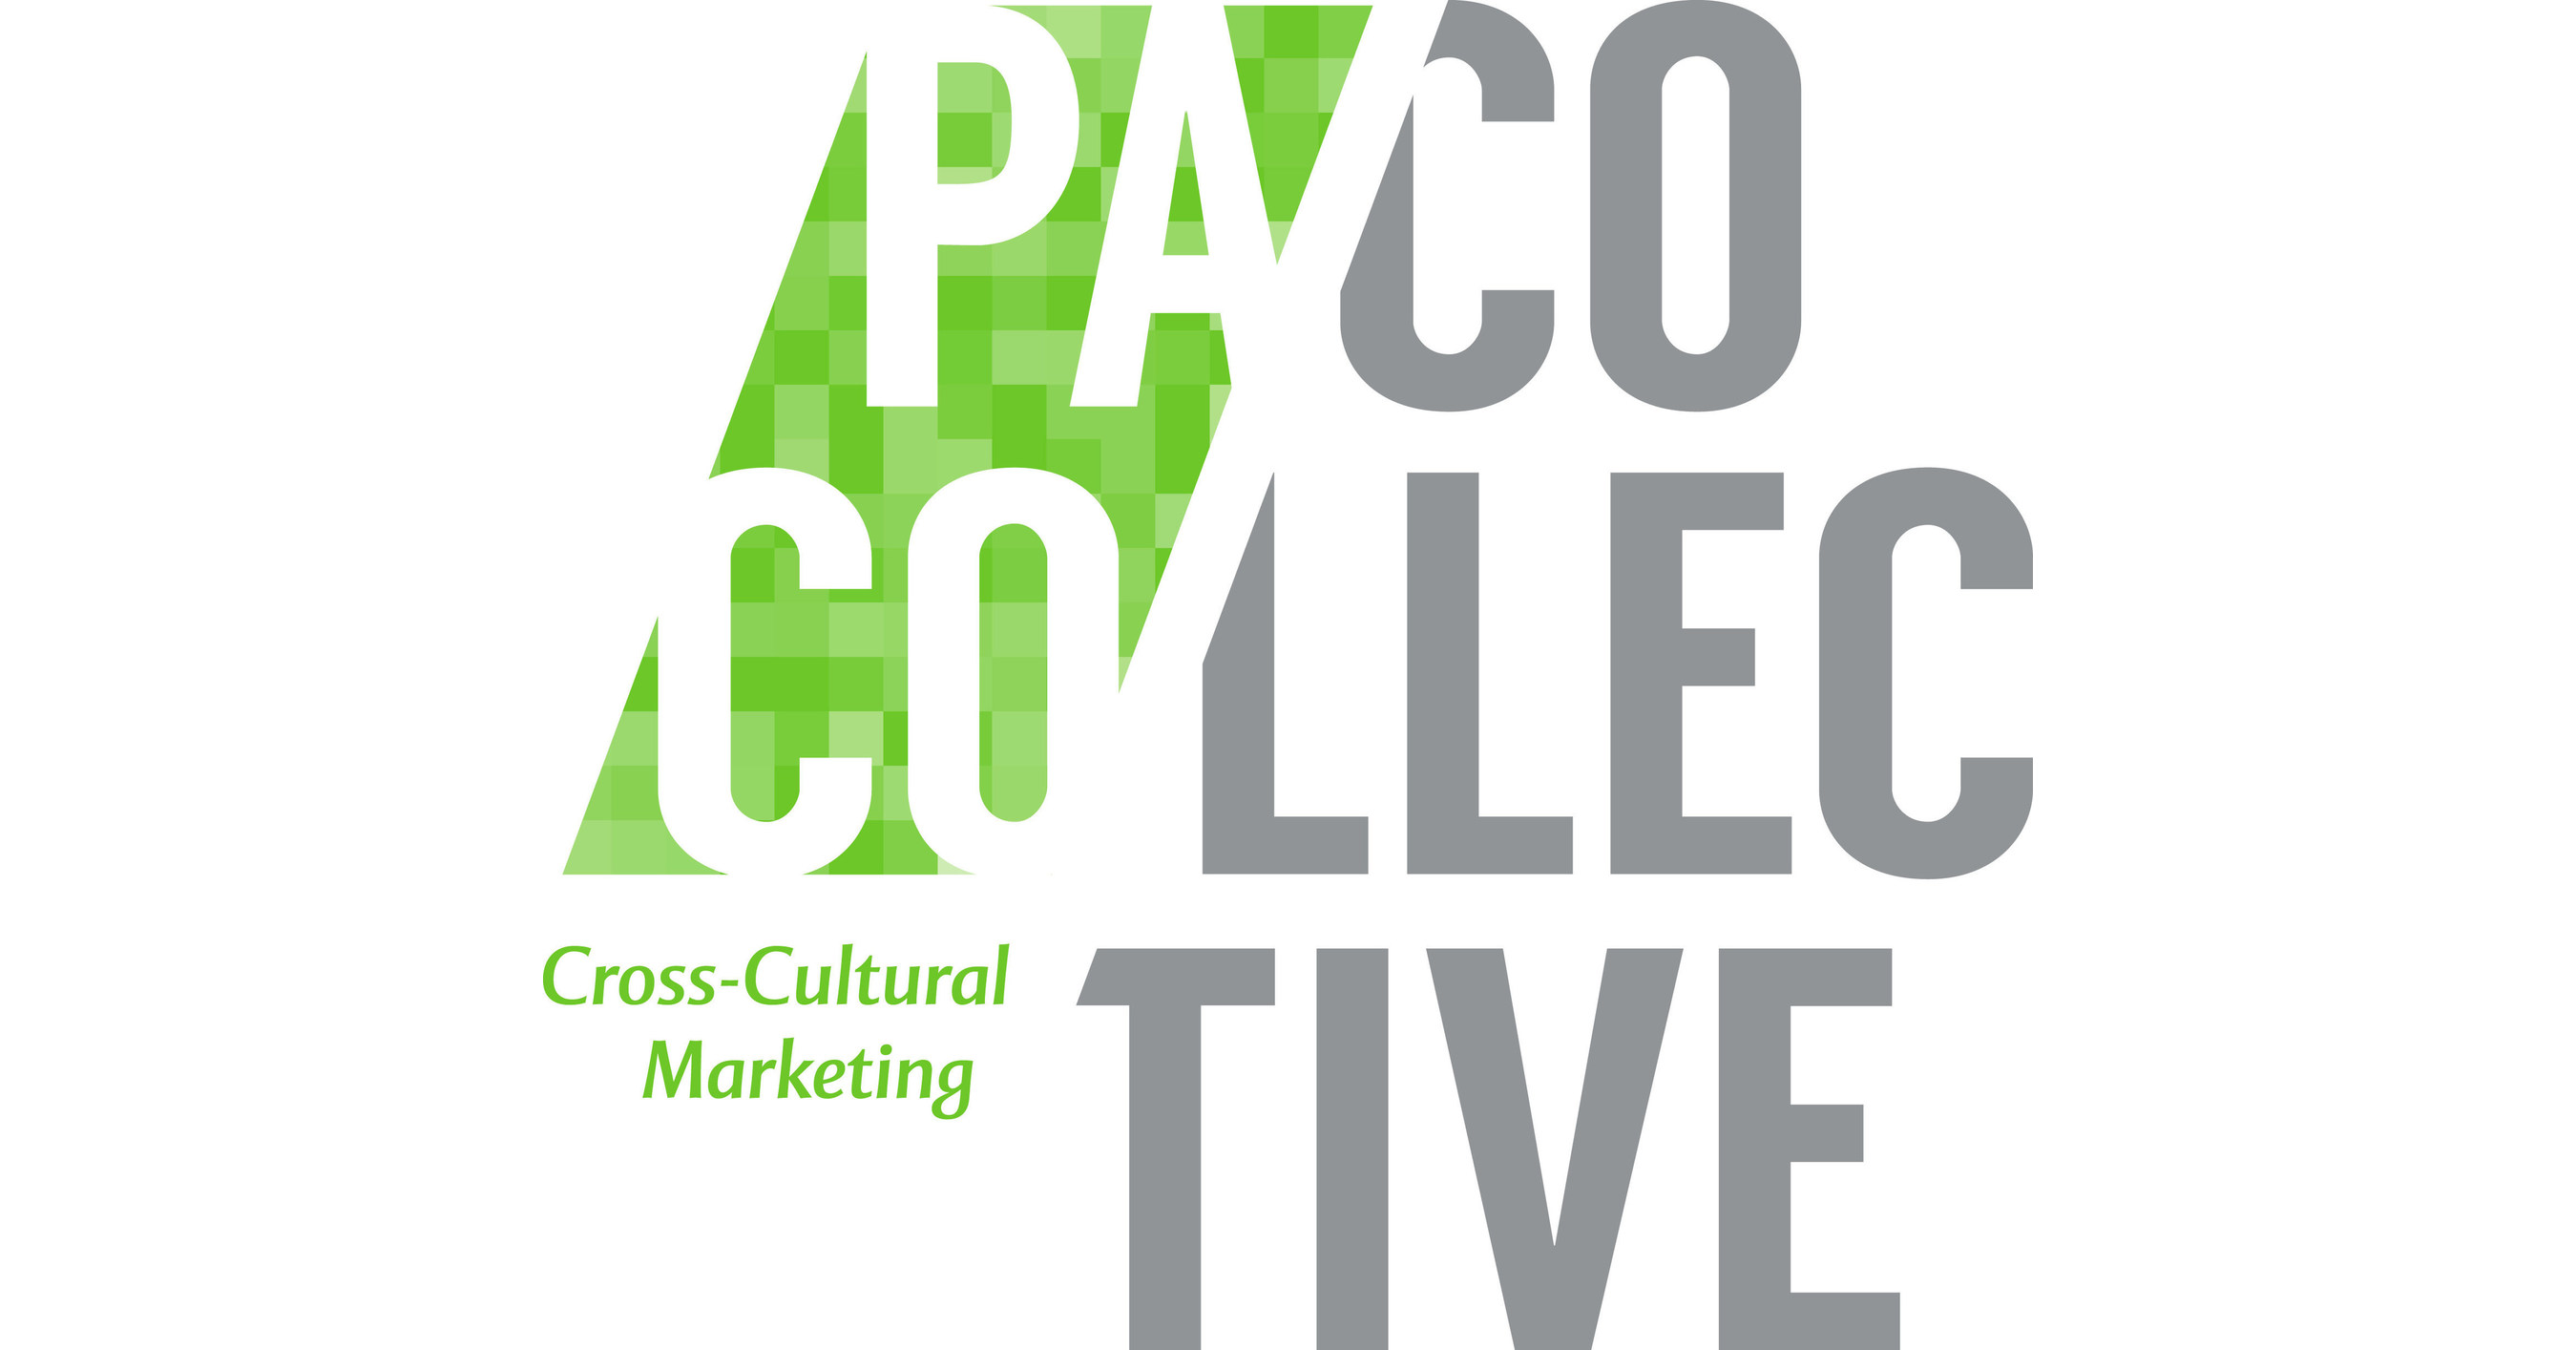 PACO Collective Chosen As Cross-Cultural Agency Of Record For Carl Buddig & Company